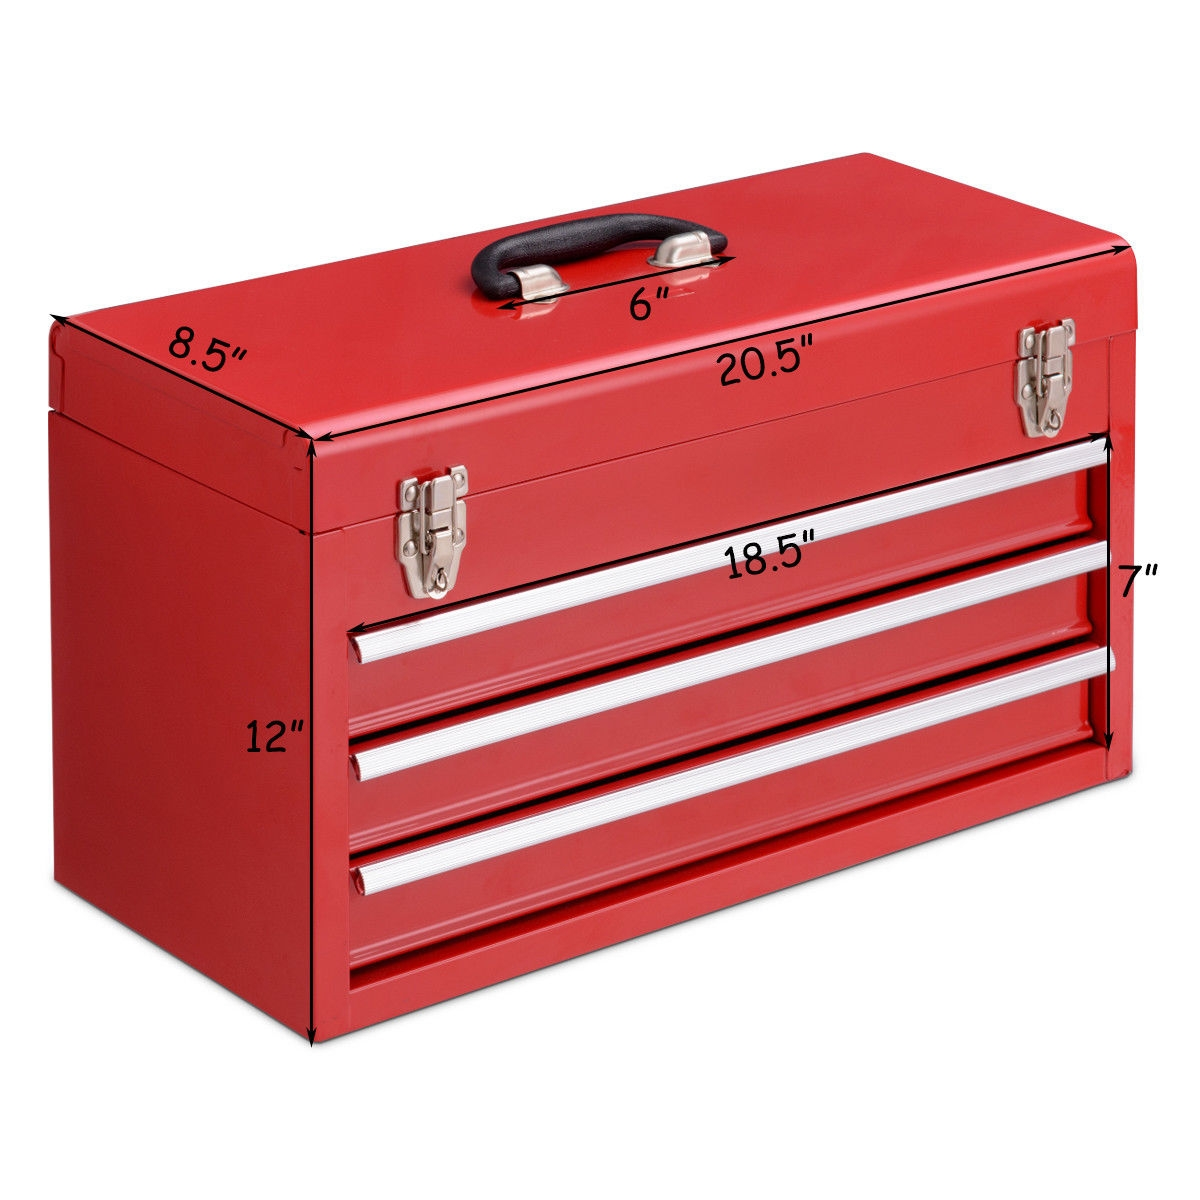 Portable Garage Mechanic Tool Cabinet Box with 3 Drawers